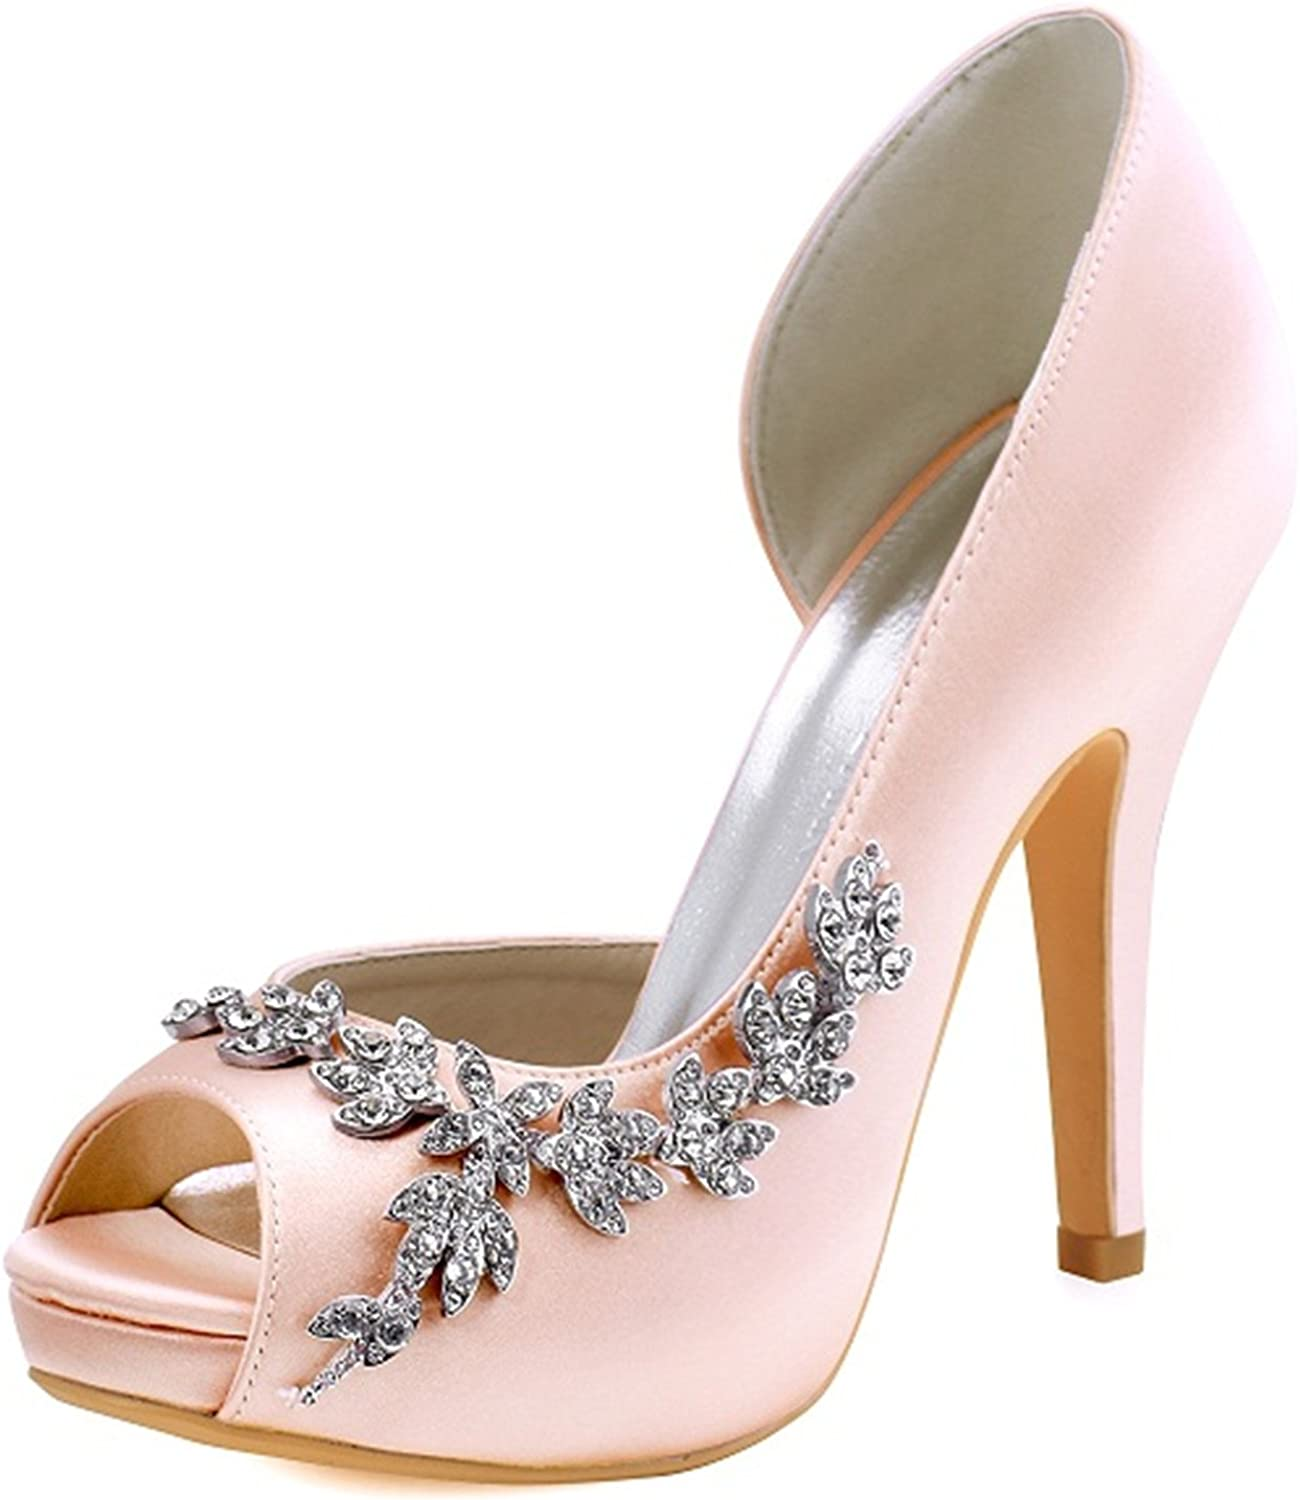 Gome-z Women Platform High Heels Bridal Wedding shoes Ivory White Rhinestones Peep Toe Bride Bridesmaids Prom Pumps Burgundy HP1560IAC